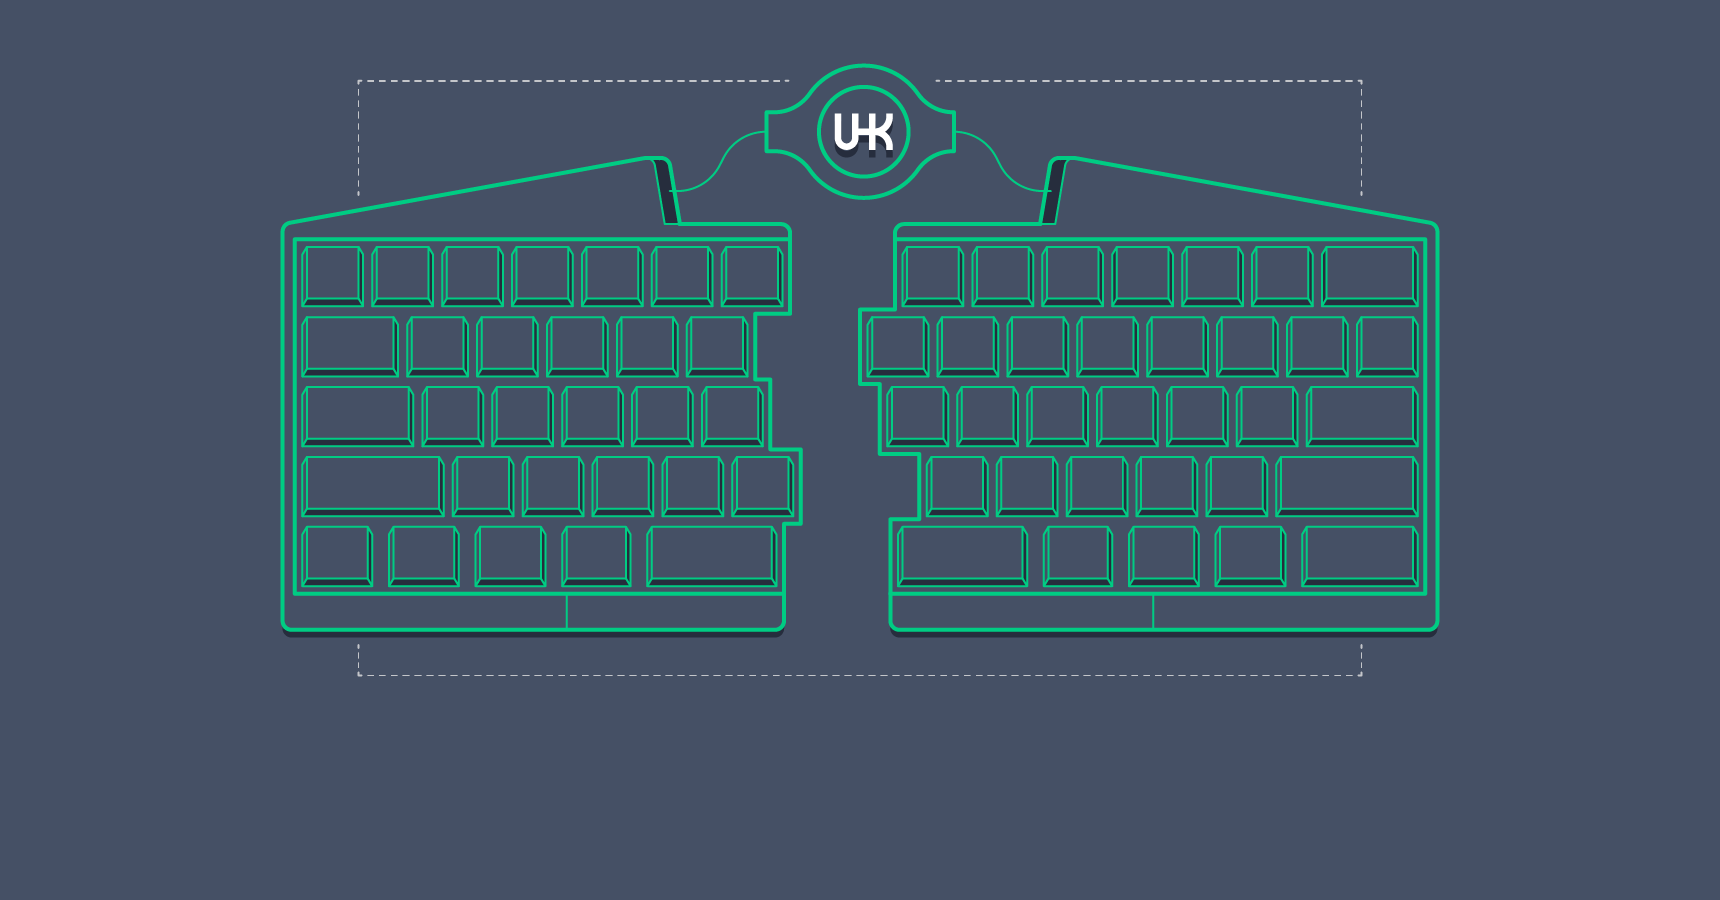 I started by thinking about how to change the keyboard layout, and finished with this!